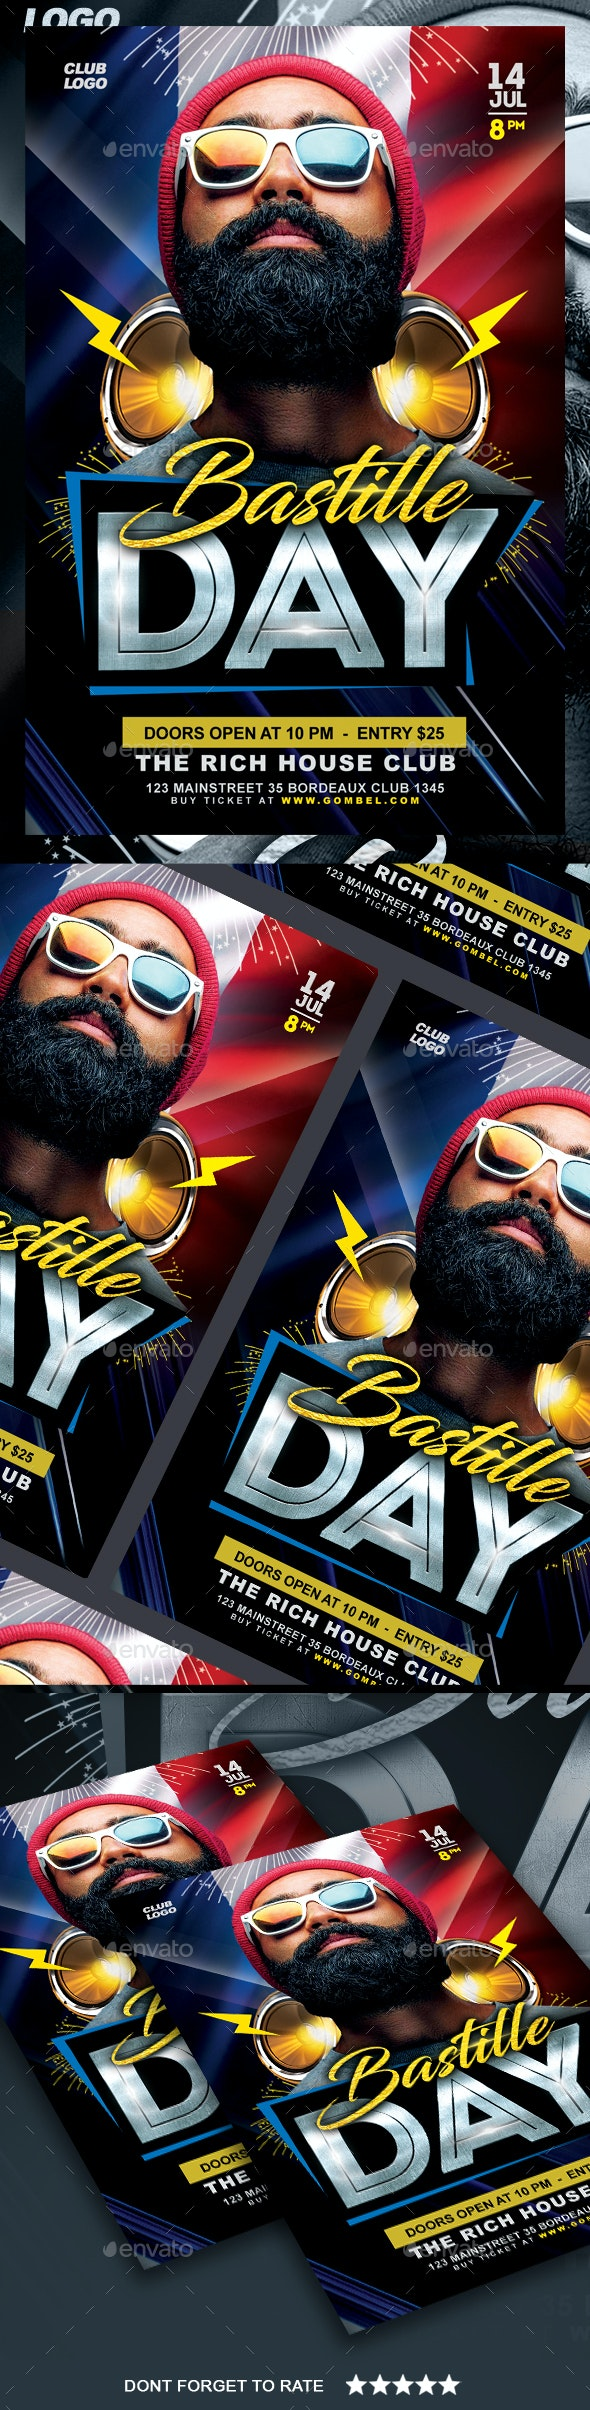 Bastille Day Flyer - Clubs & Parties Events